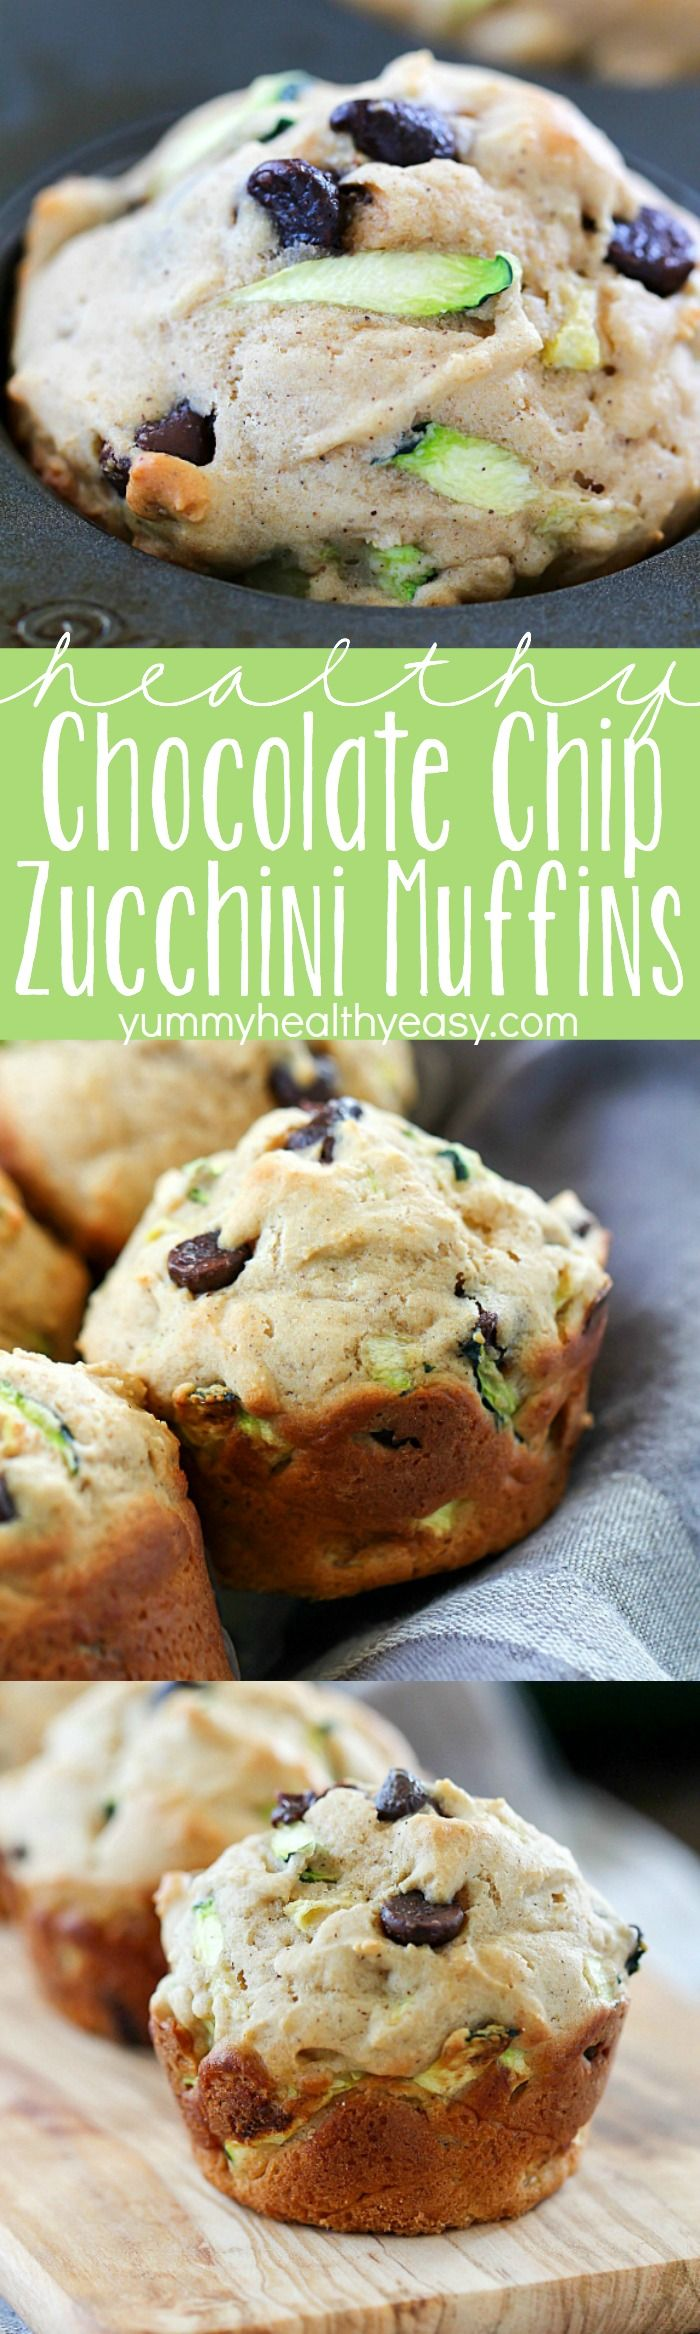 These Chocolate Chip Zucchini Muffins are the best of both worlds - healthy AND decadent! They're full of tender zucchini and chocolate chips but are made healthier by using applesauce instead of lots of butter. These make a yummy breakfast or after school snack!